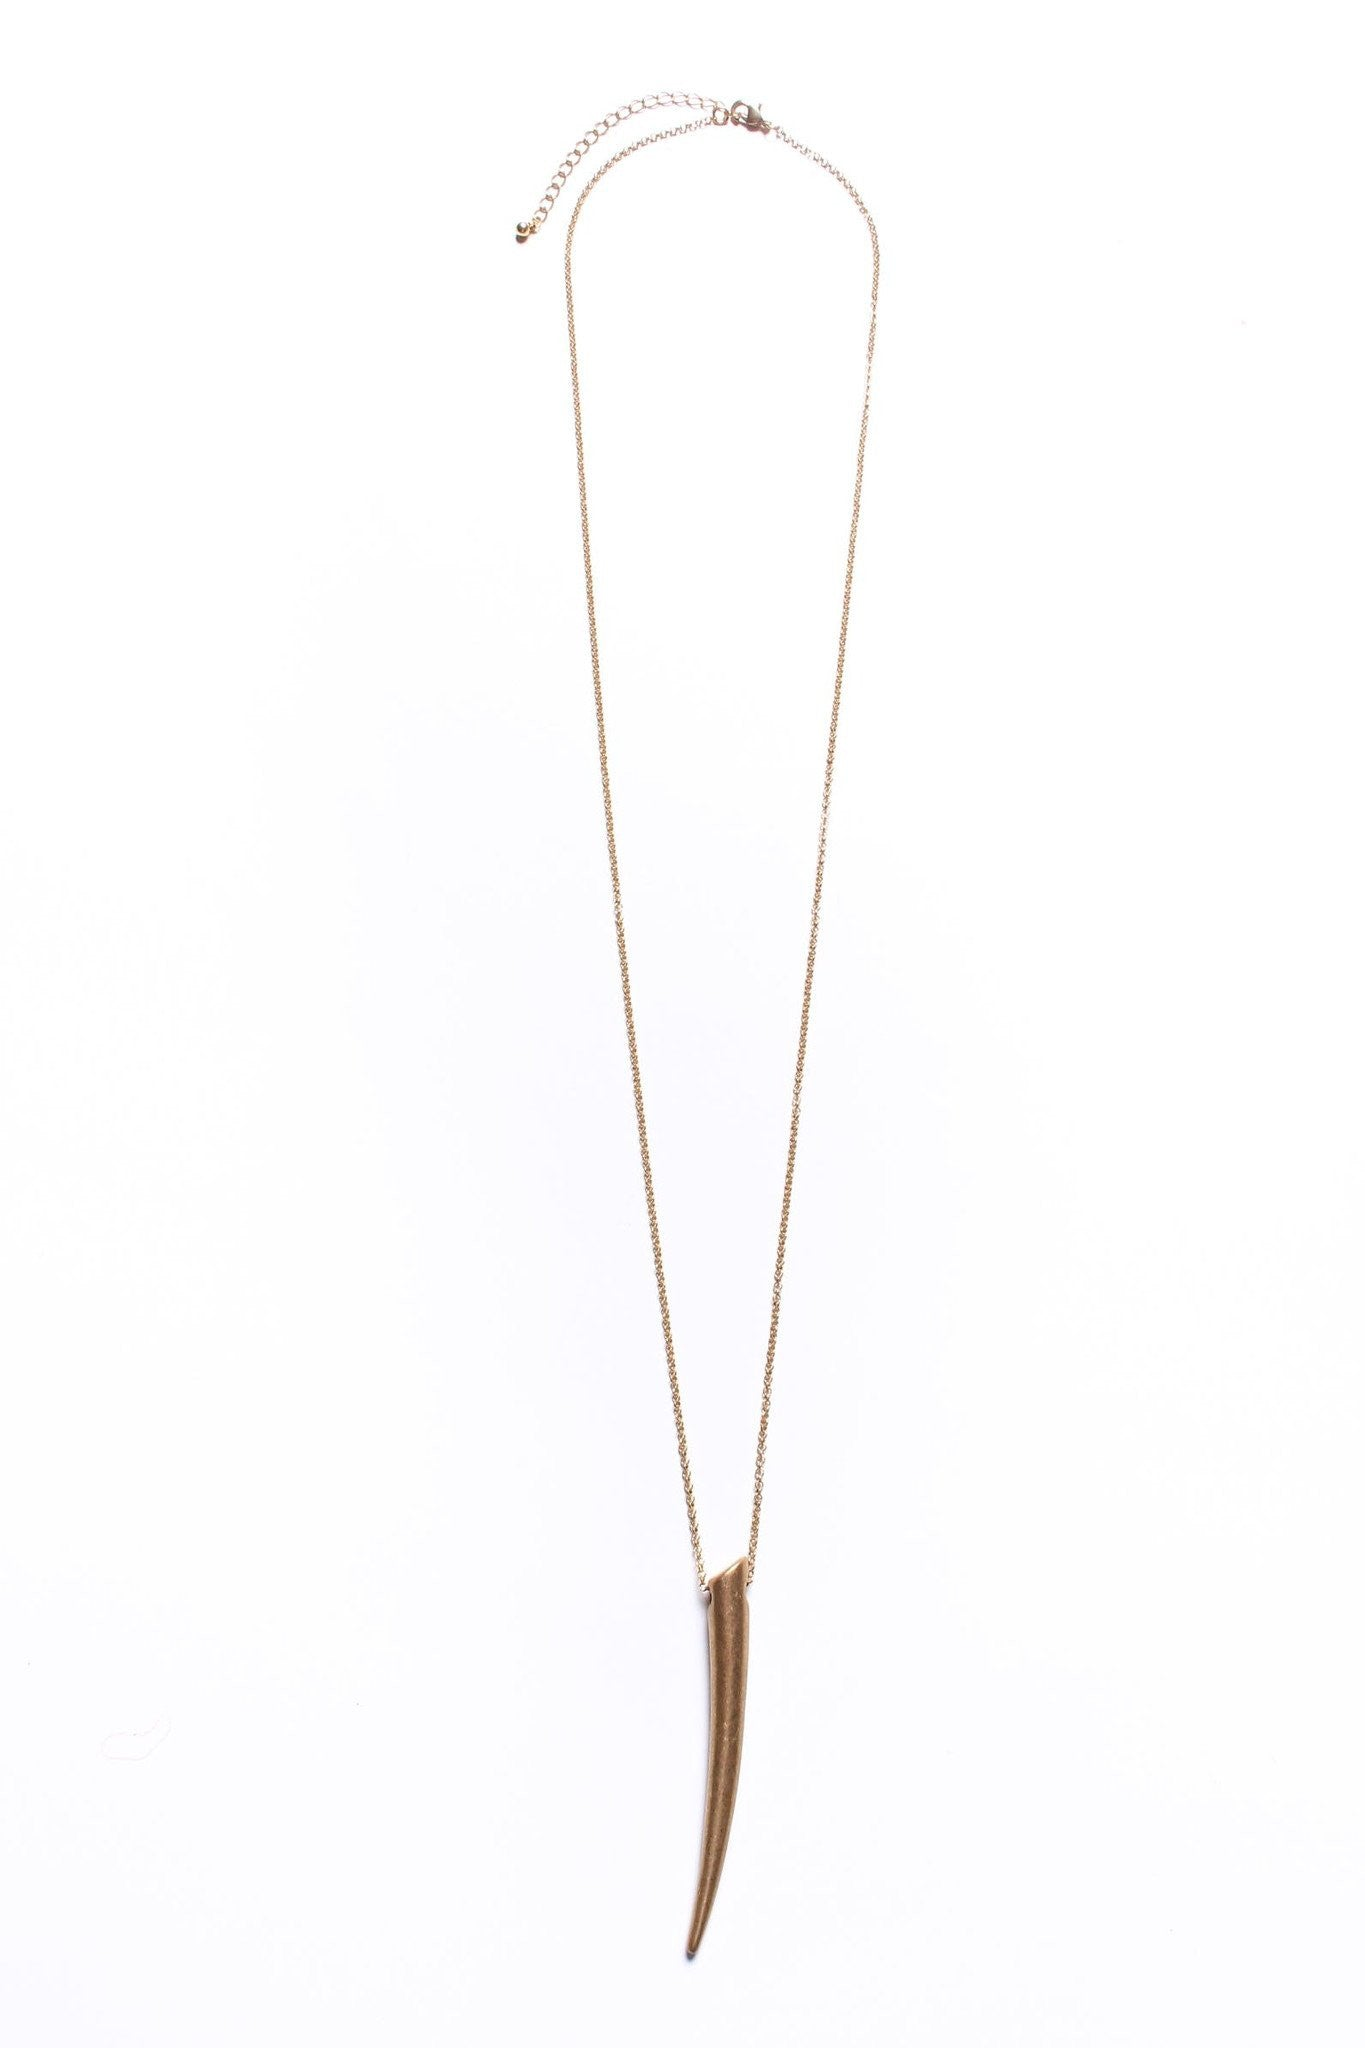 Golden Tusk Necklace